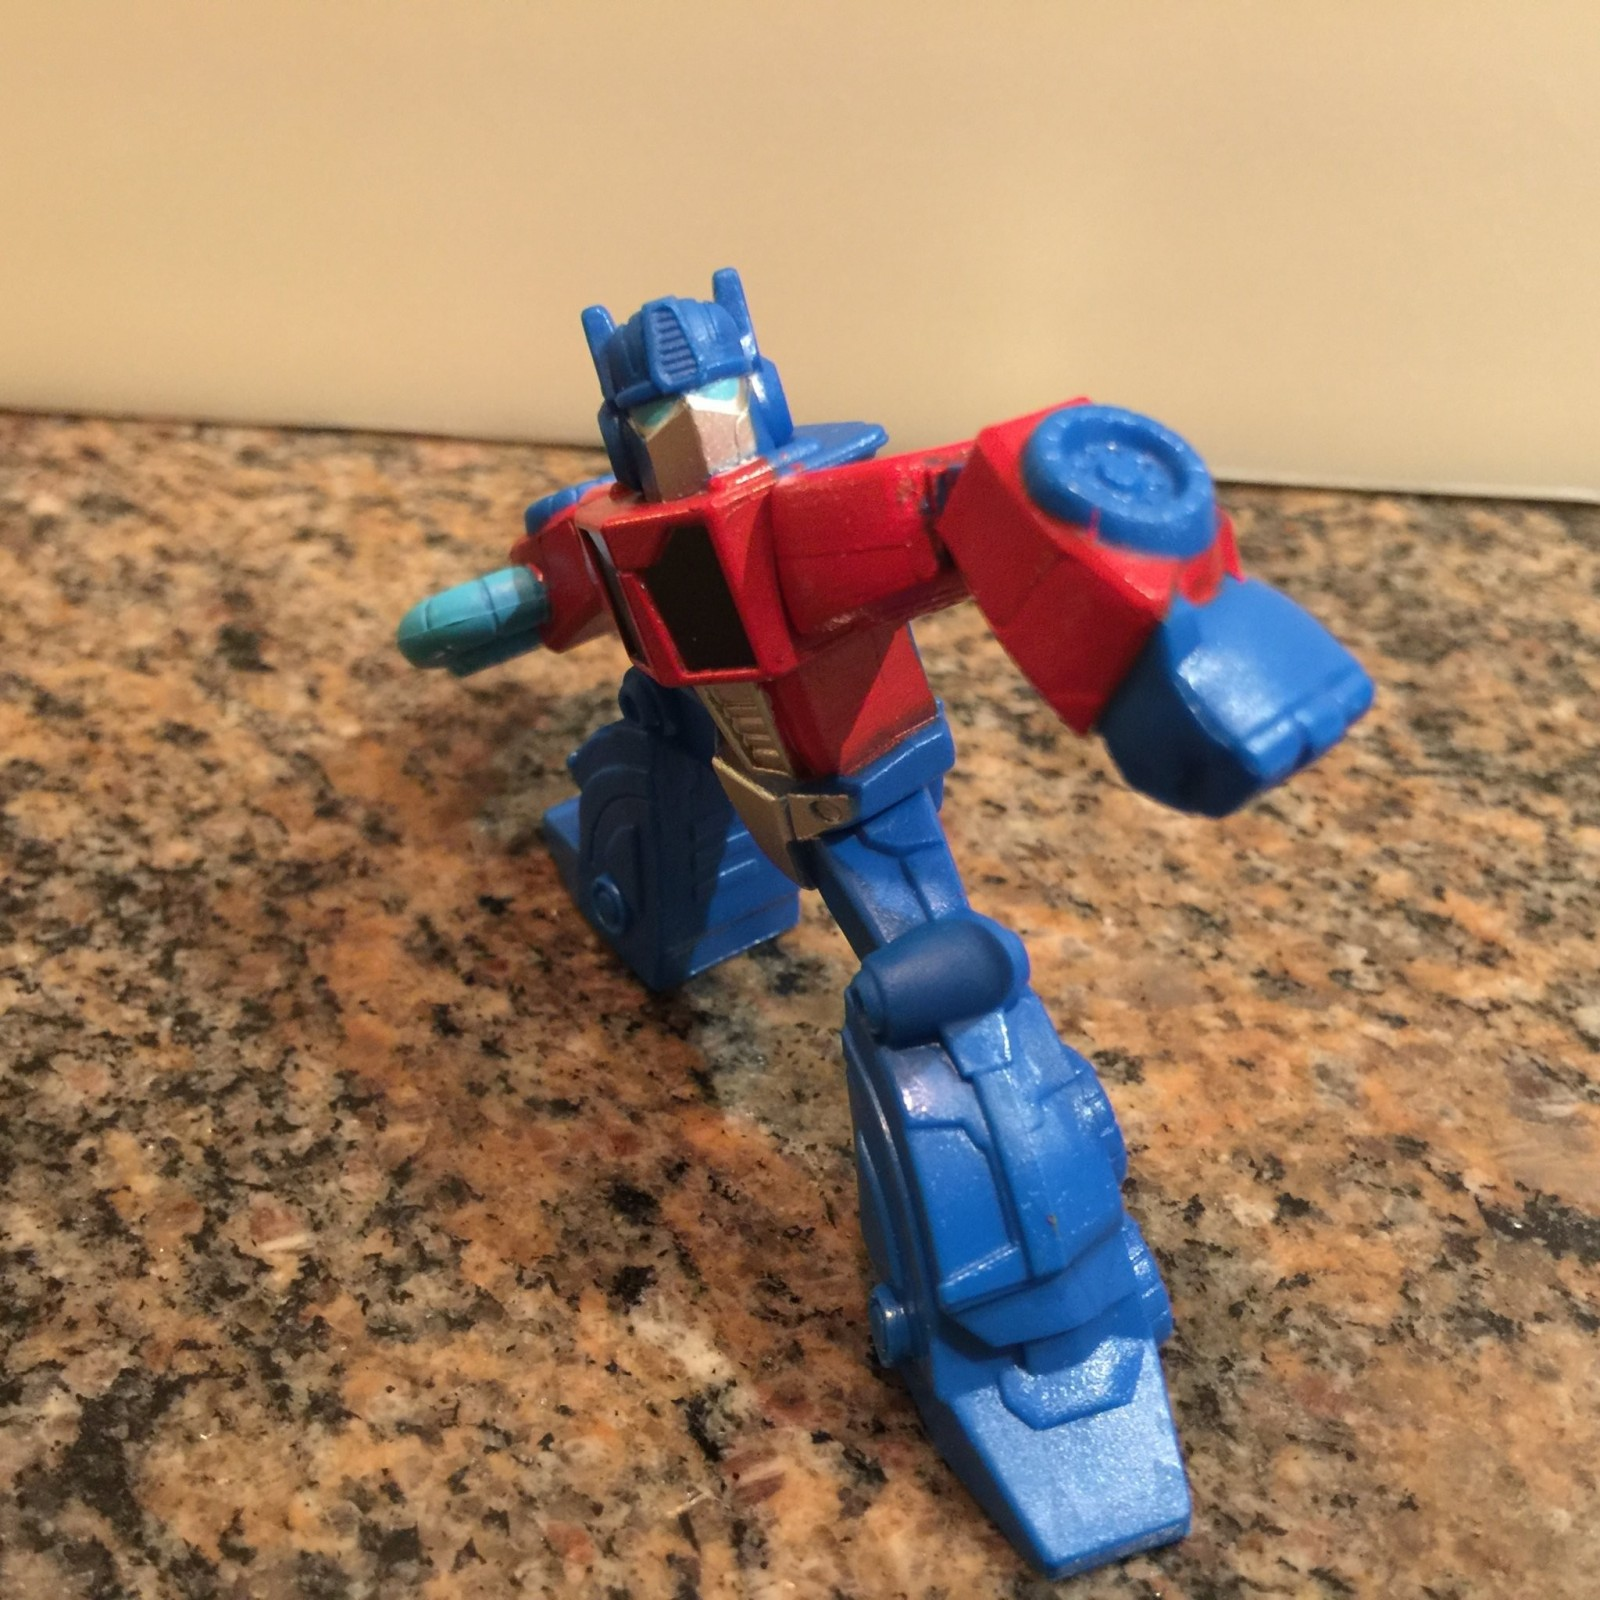 Transformers News: In Hand Images of Transformers: Rescue Bots Blind Bag Toys Showcasing Arm Swapping Gimmick